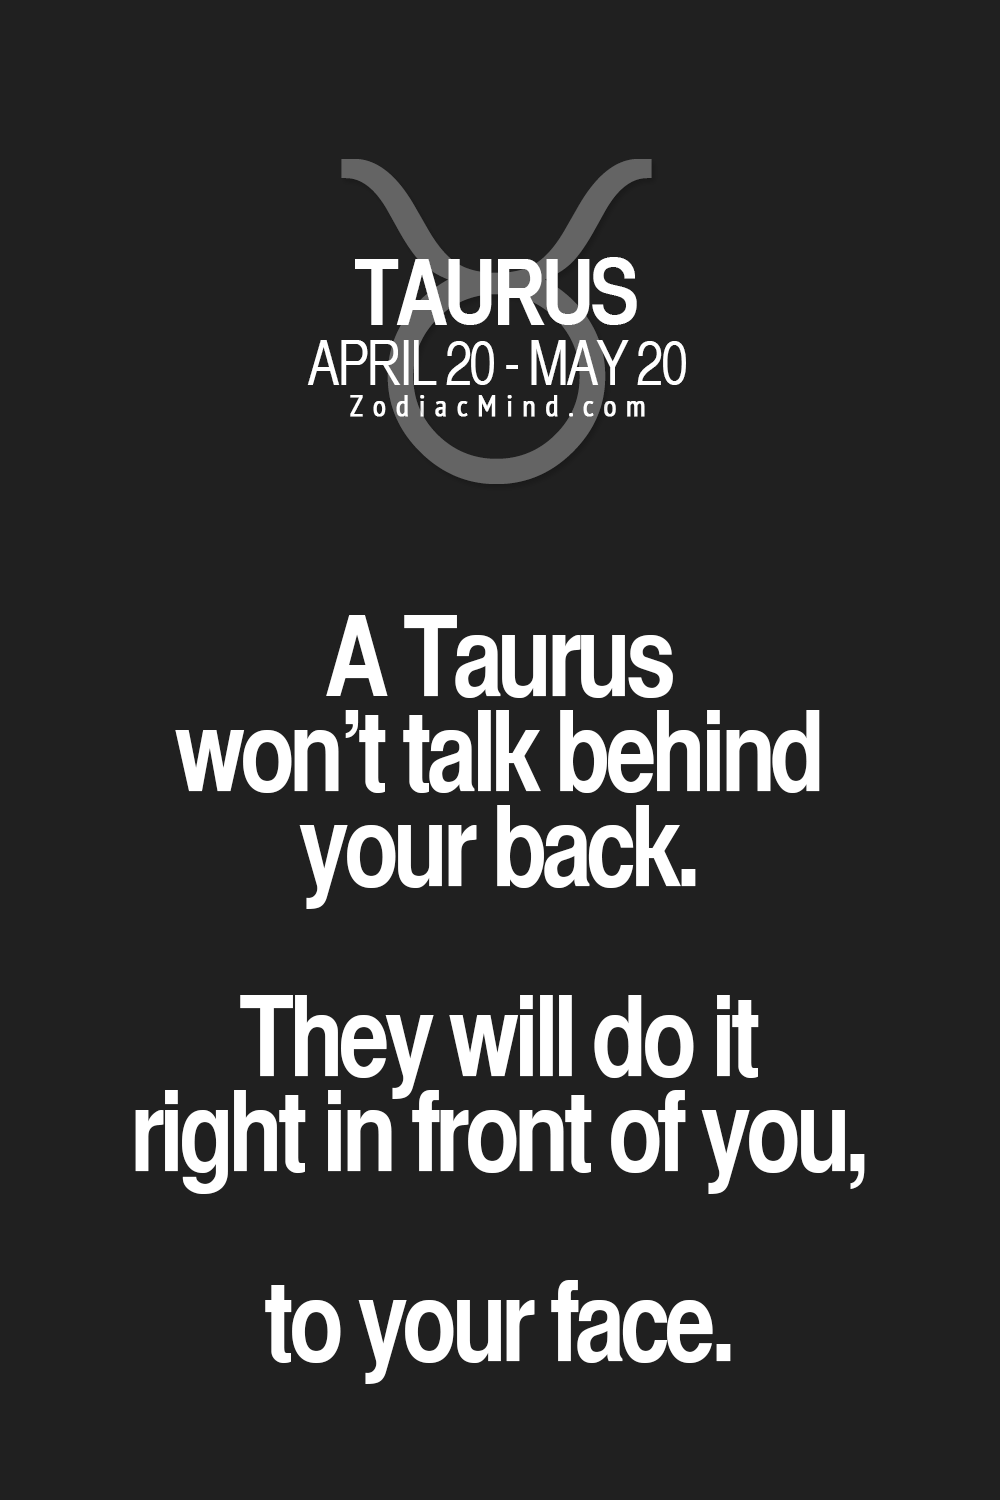 A Taurus won't talk behind your back. They will do it right in front of you, to your face.